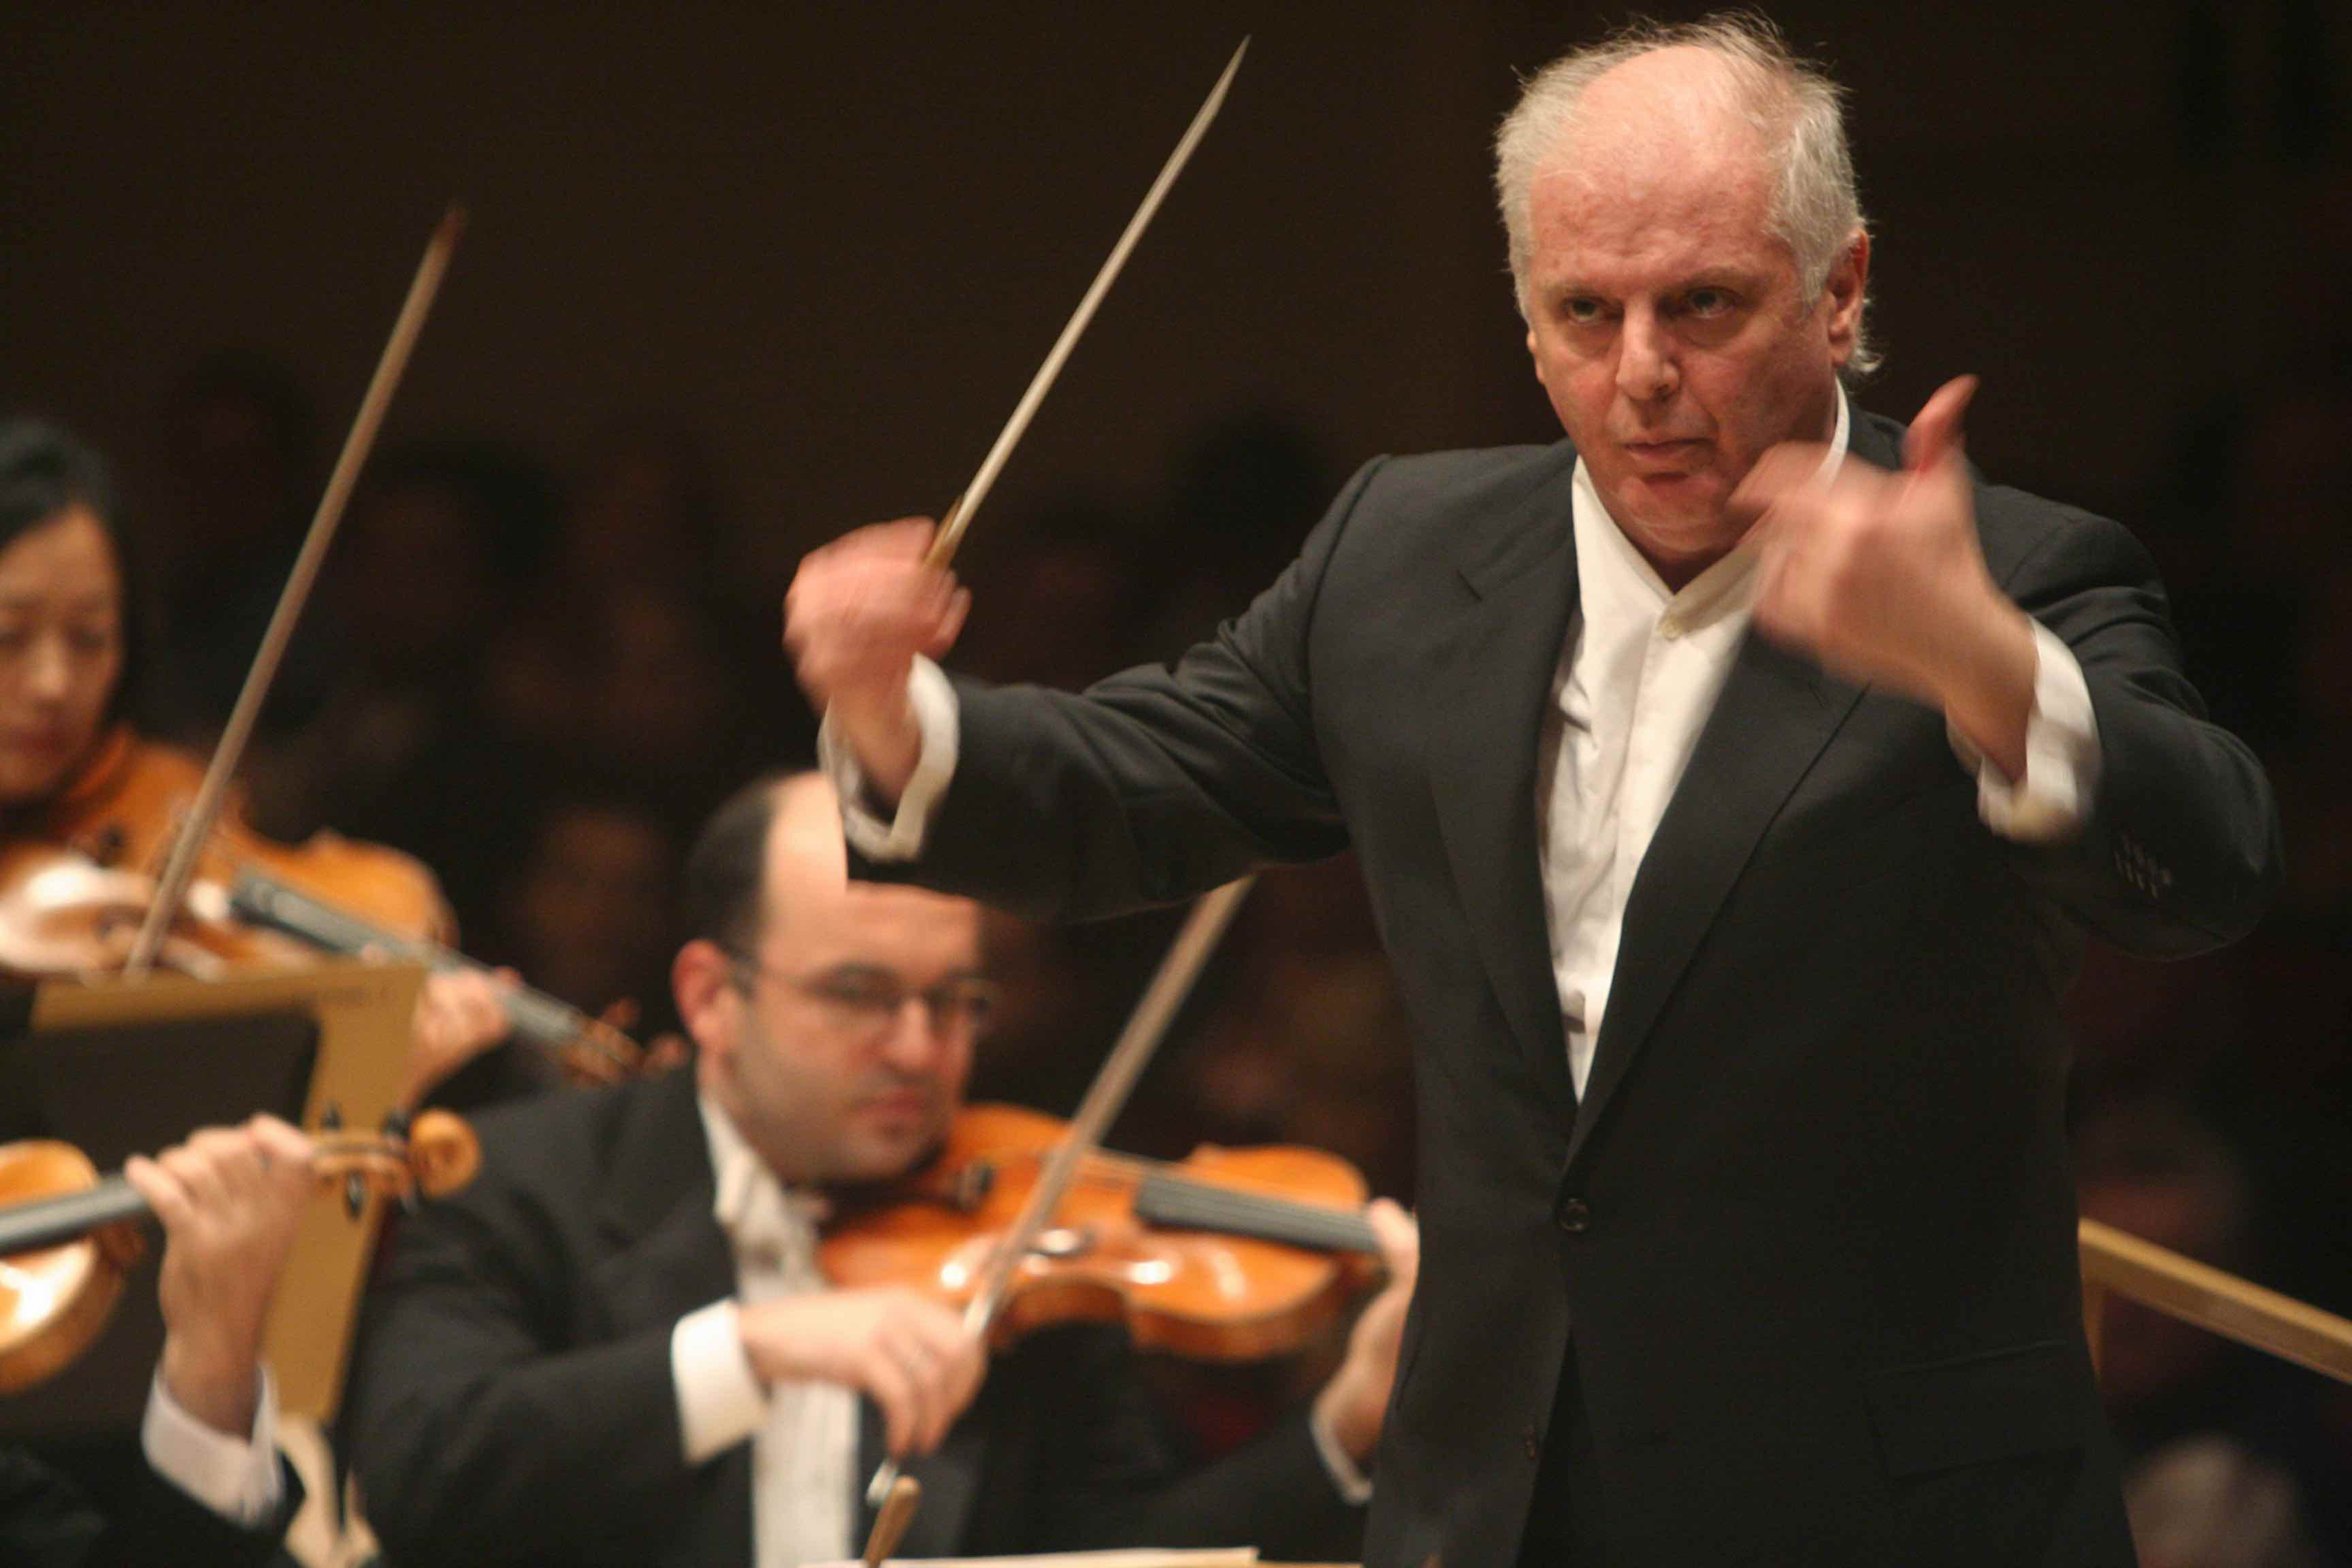 Daniel Barenboim leading the Chicago Symphony Orchestra at Carnegie Hall on Friday night, November 4, 2005.This image:Daniel